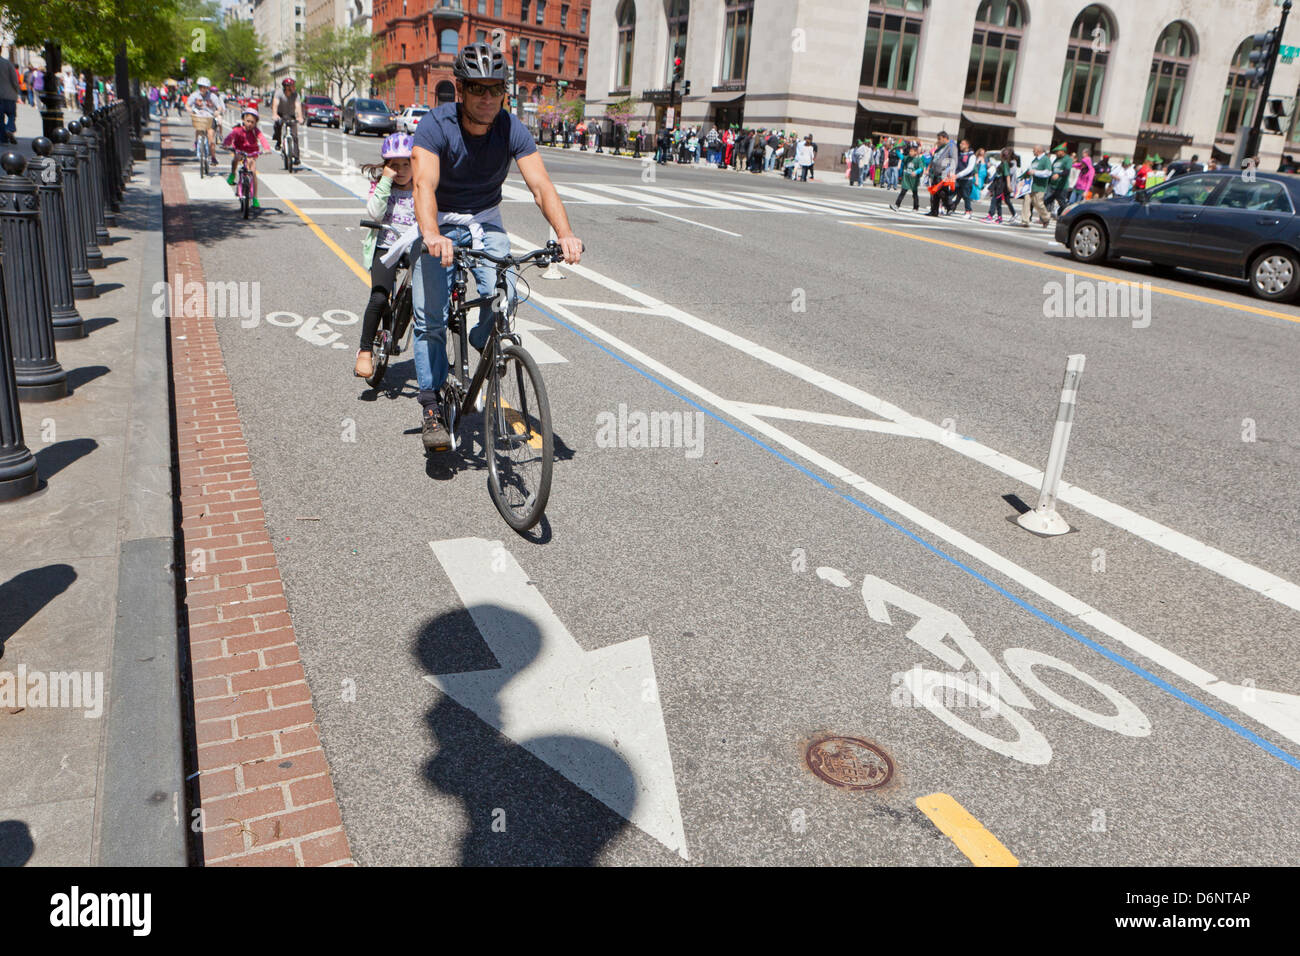 Cyclists riding in urban bike lane - Washington, DC USA - Stock Image